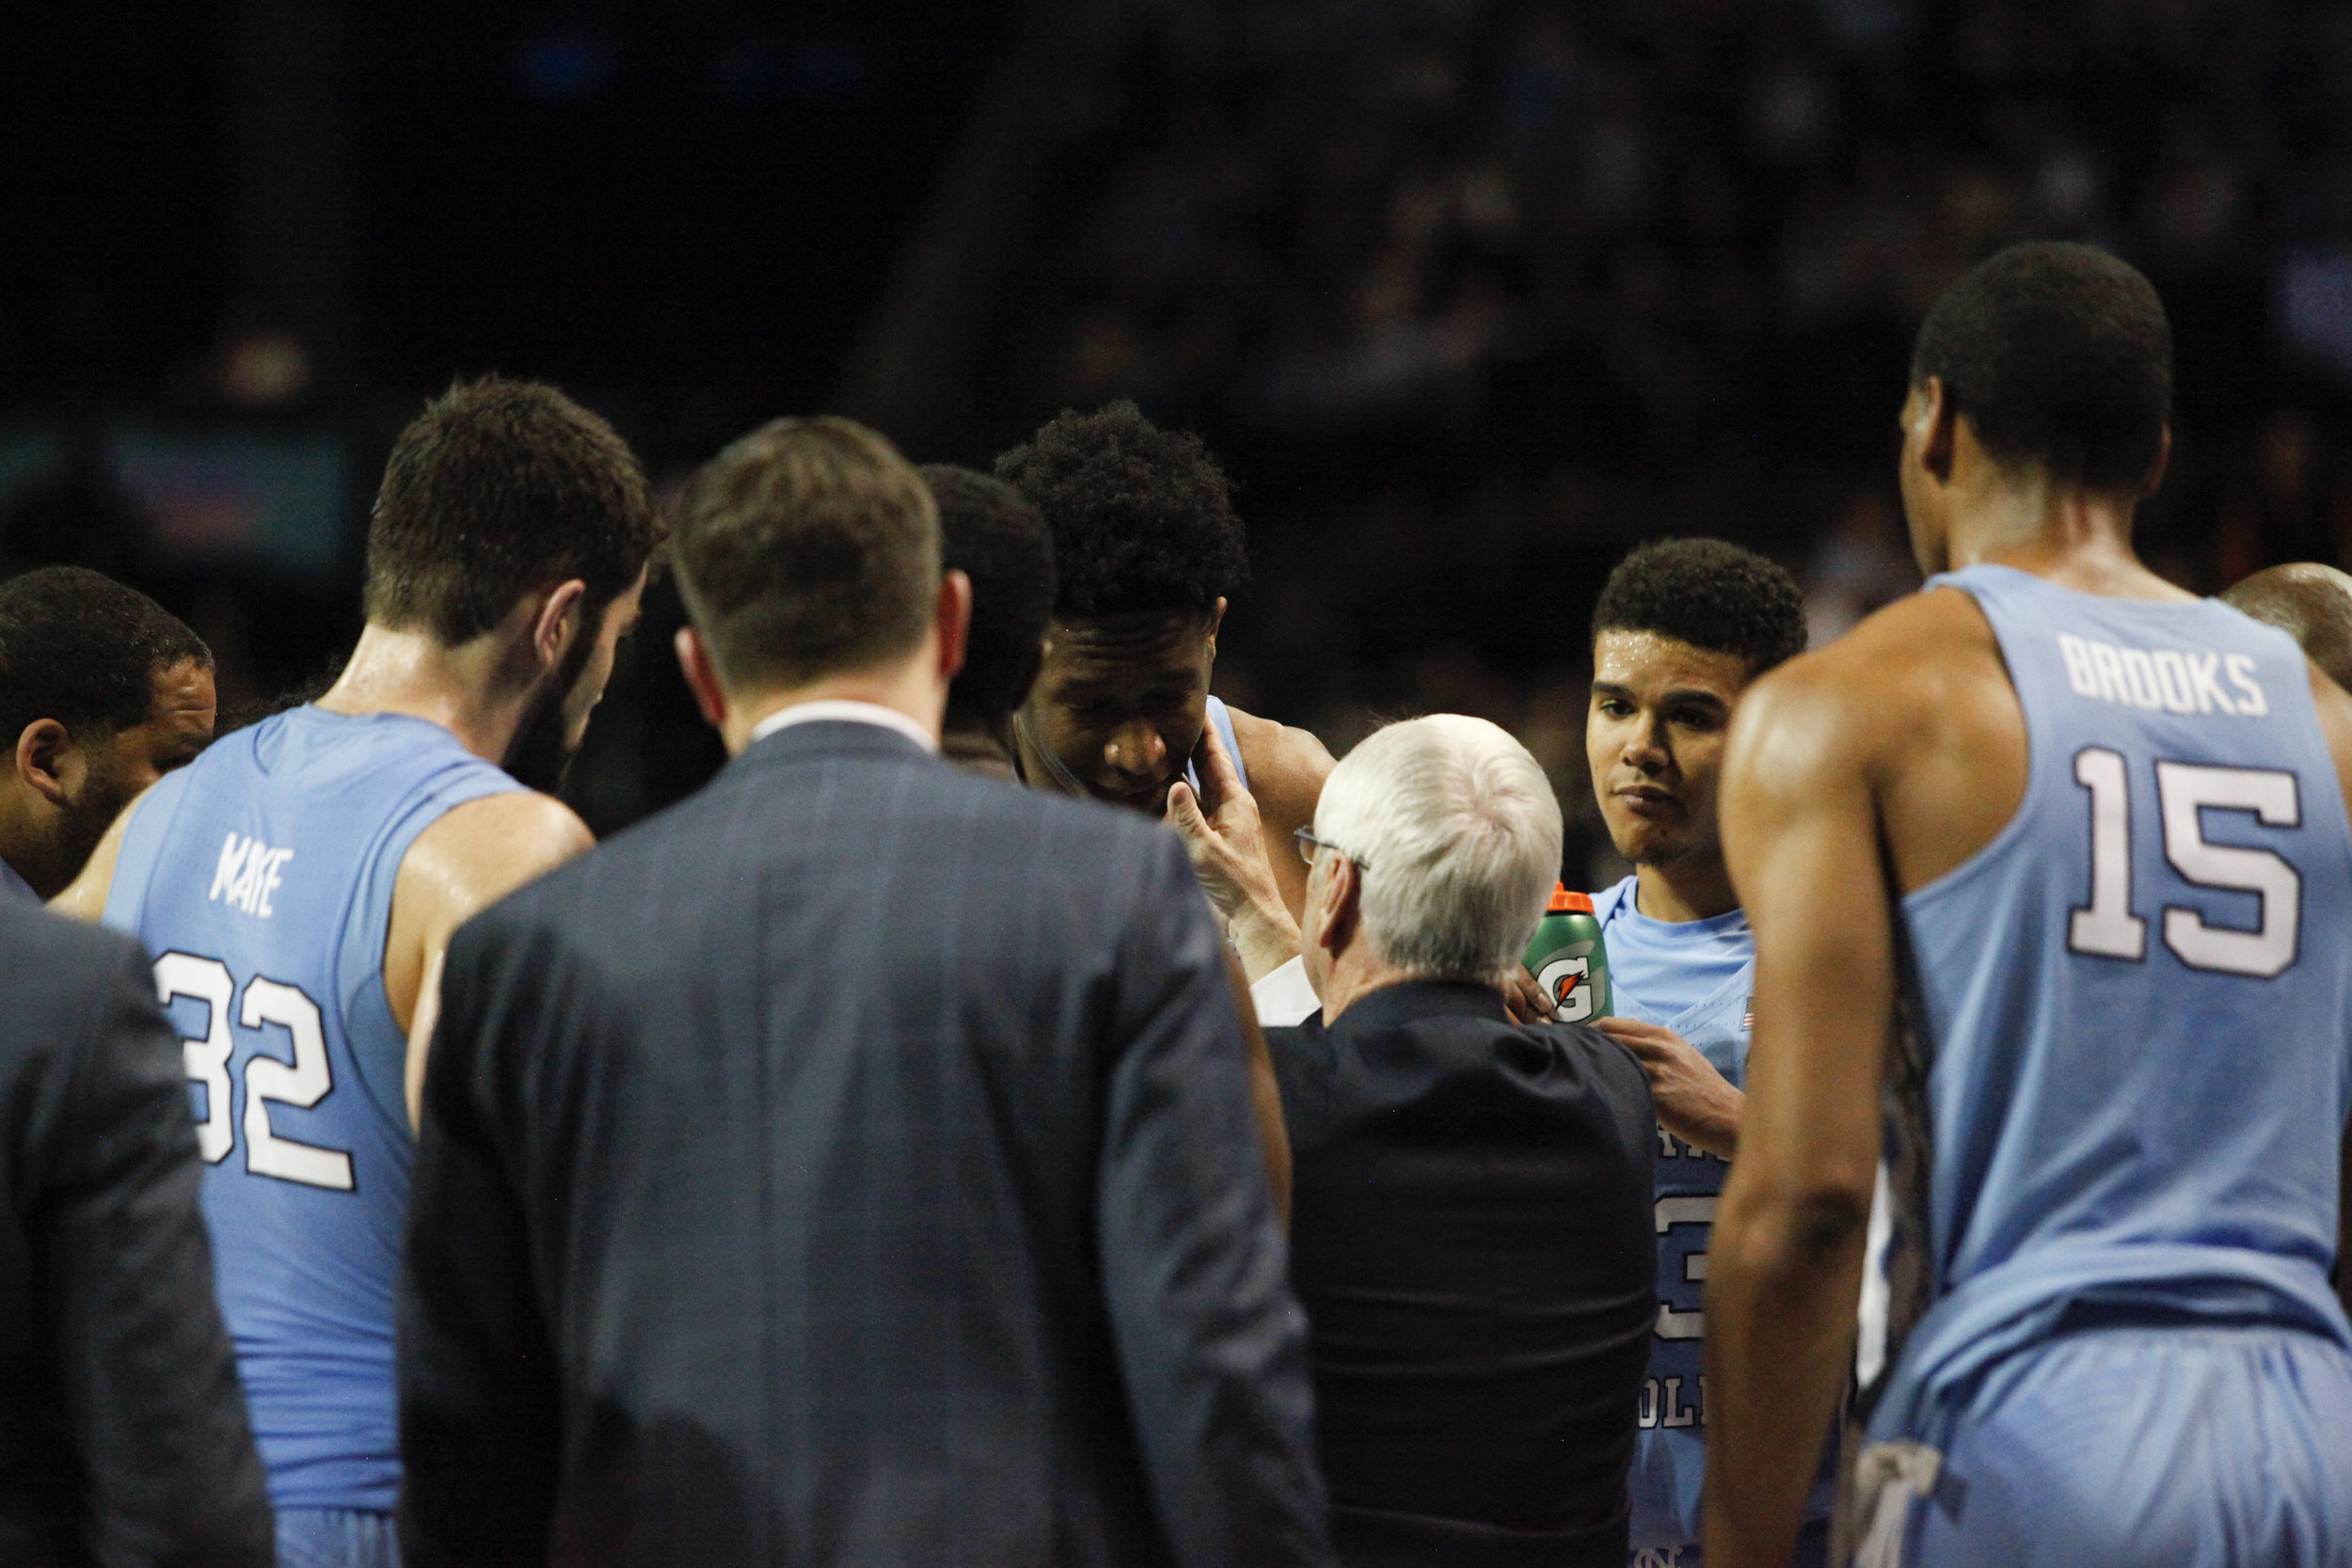 UNC head coach gives Sterling Manley a little pat during a huddle in the game against Miami at the ACC Tournament in Brooklyn, New York.